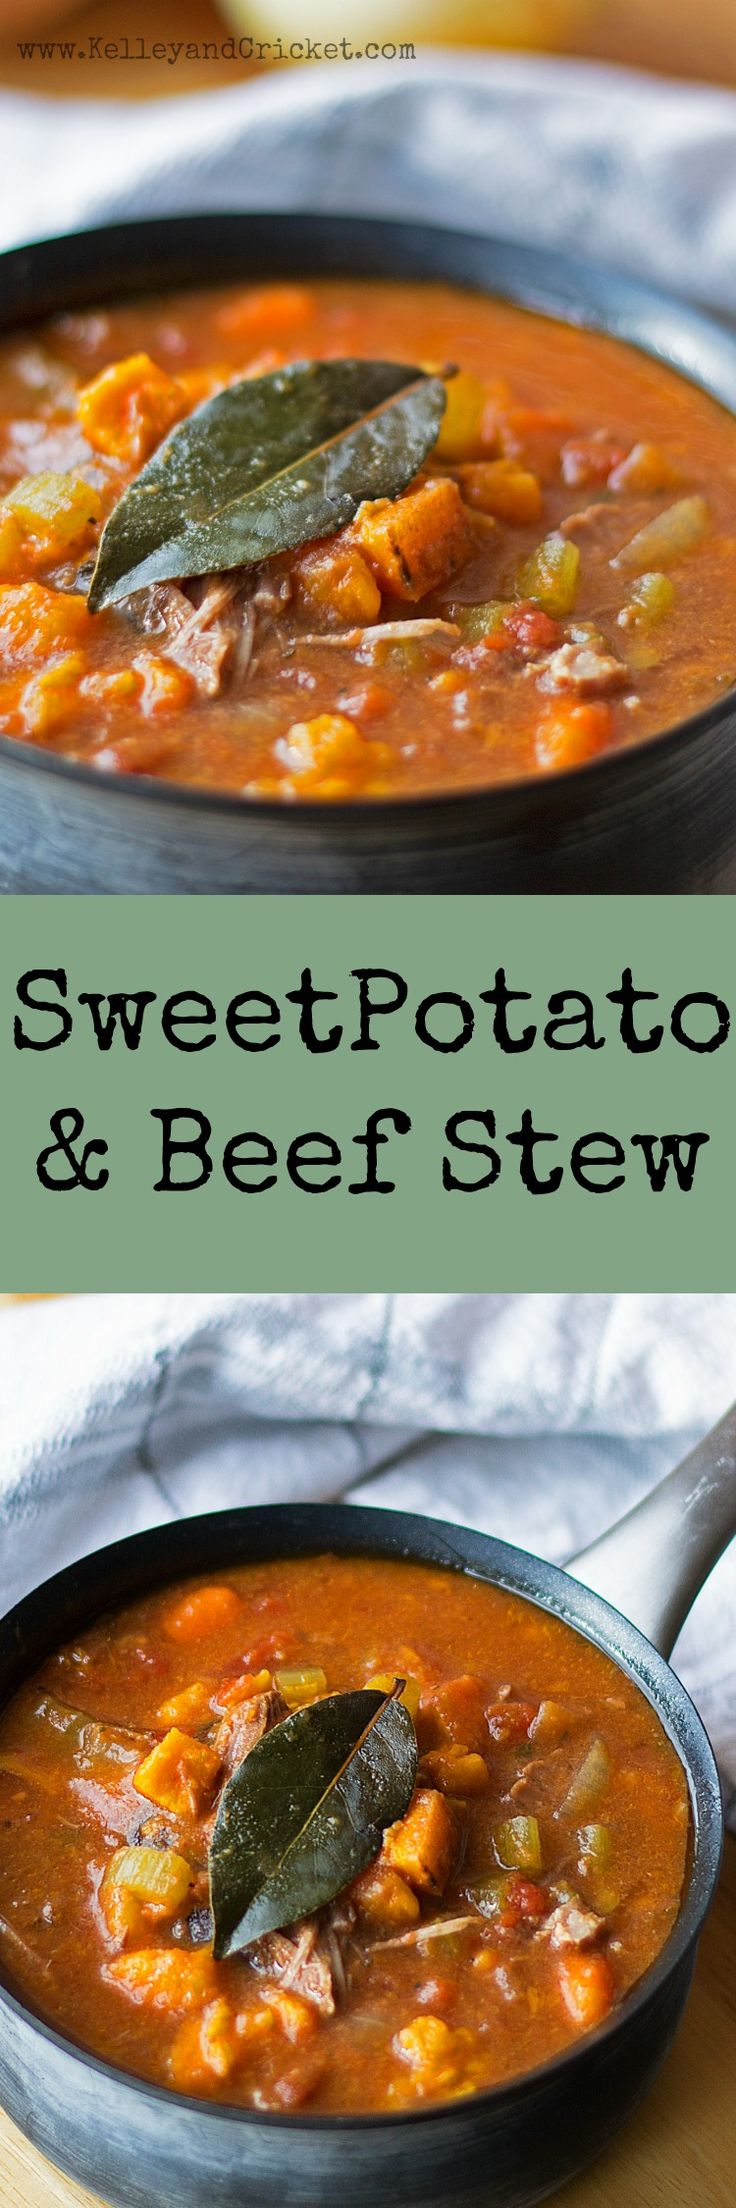 This Hearty Beef Stew is the perfect set it and forget it meal. It's healthy, packed full of flavor, and takes less than 10 minutes to throw it all together in the crockpot.